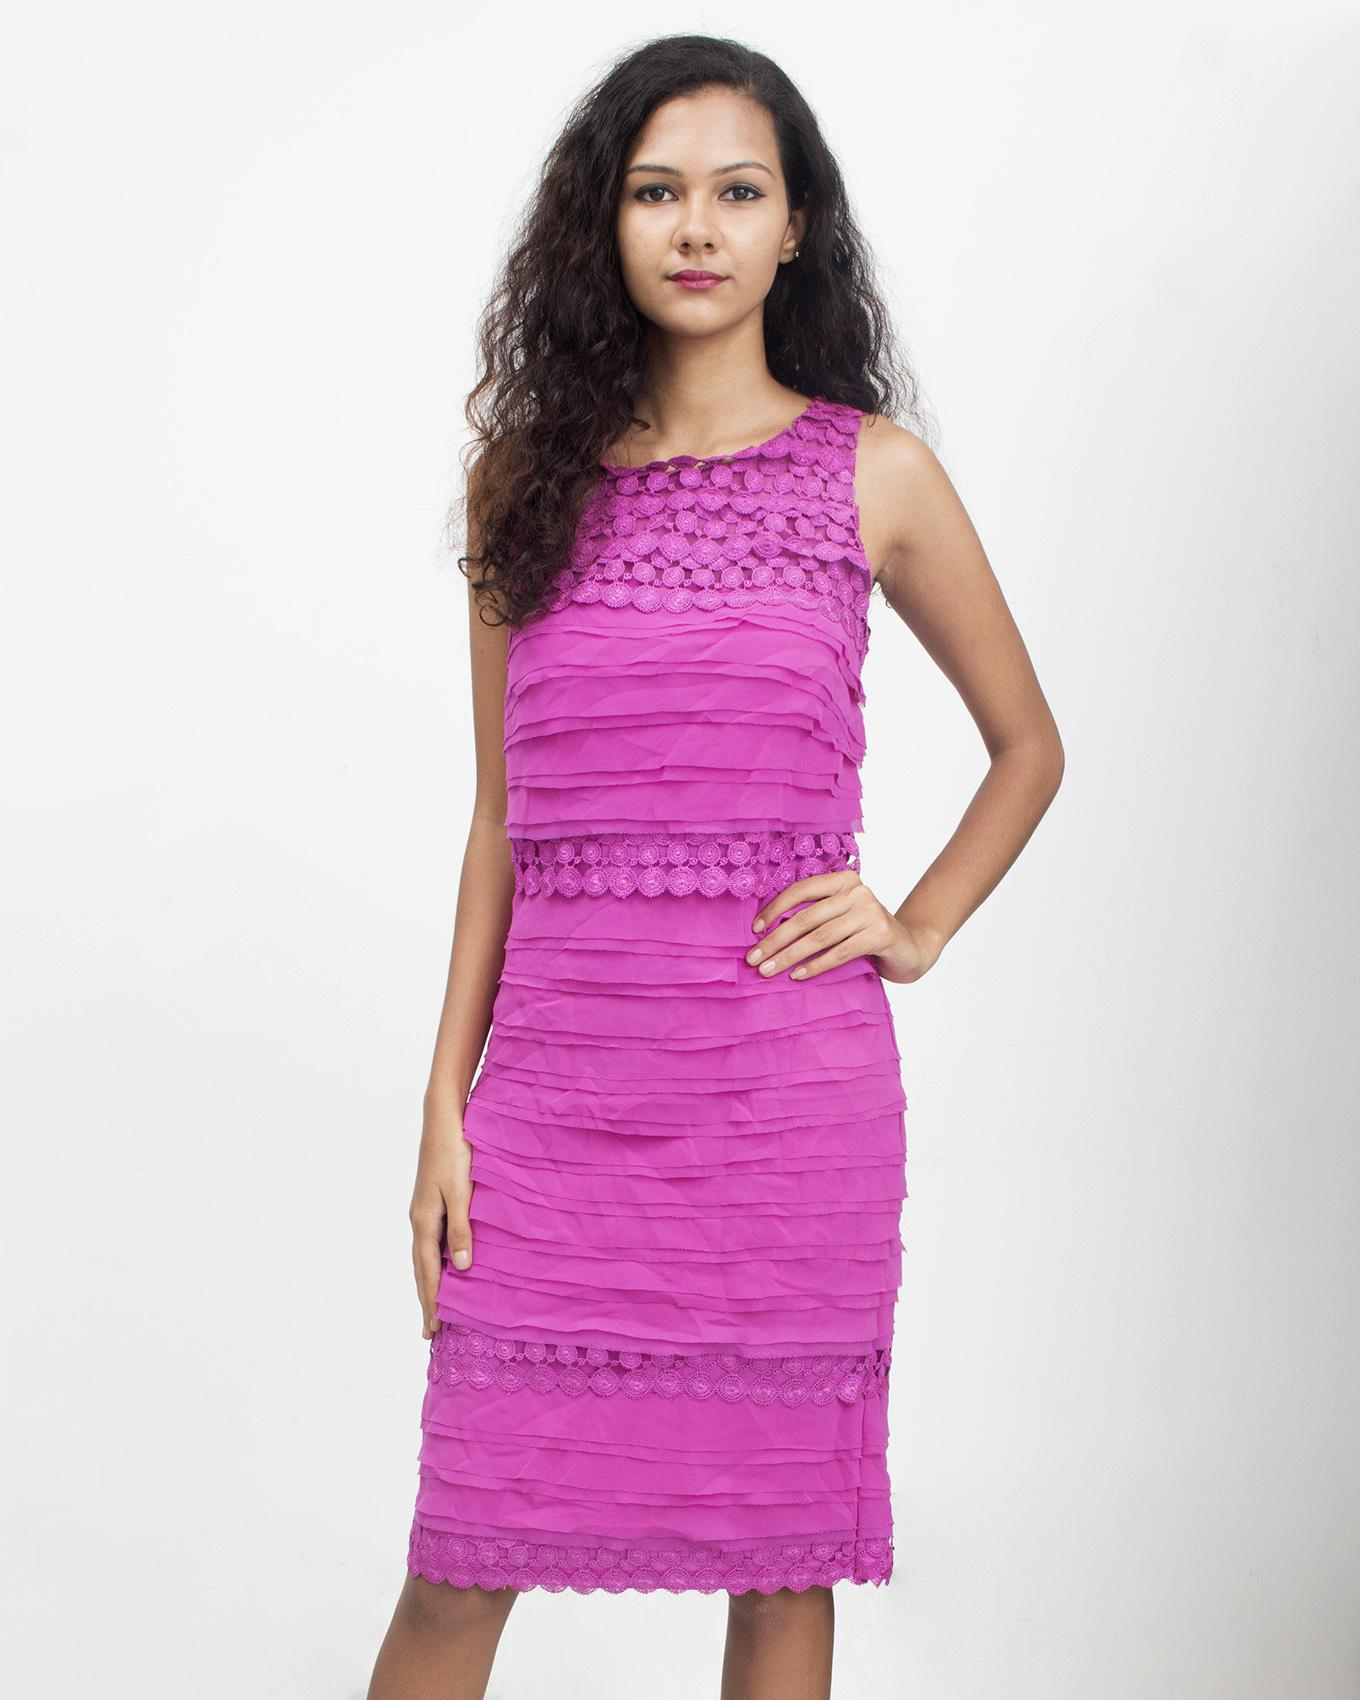 TOFO Women's Pink Sleeveless Shutter Dress with Lace Trimmed Illusion Neckline